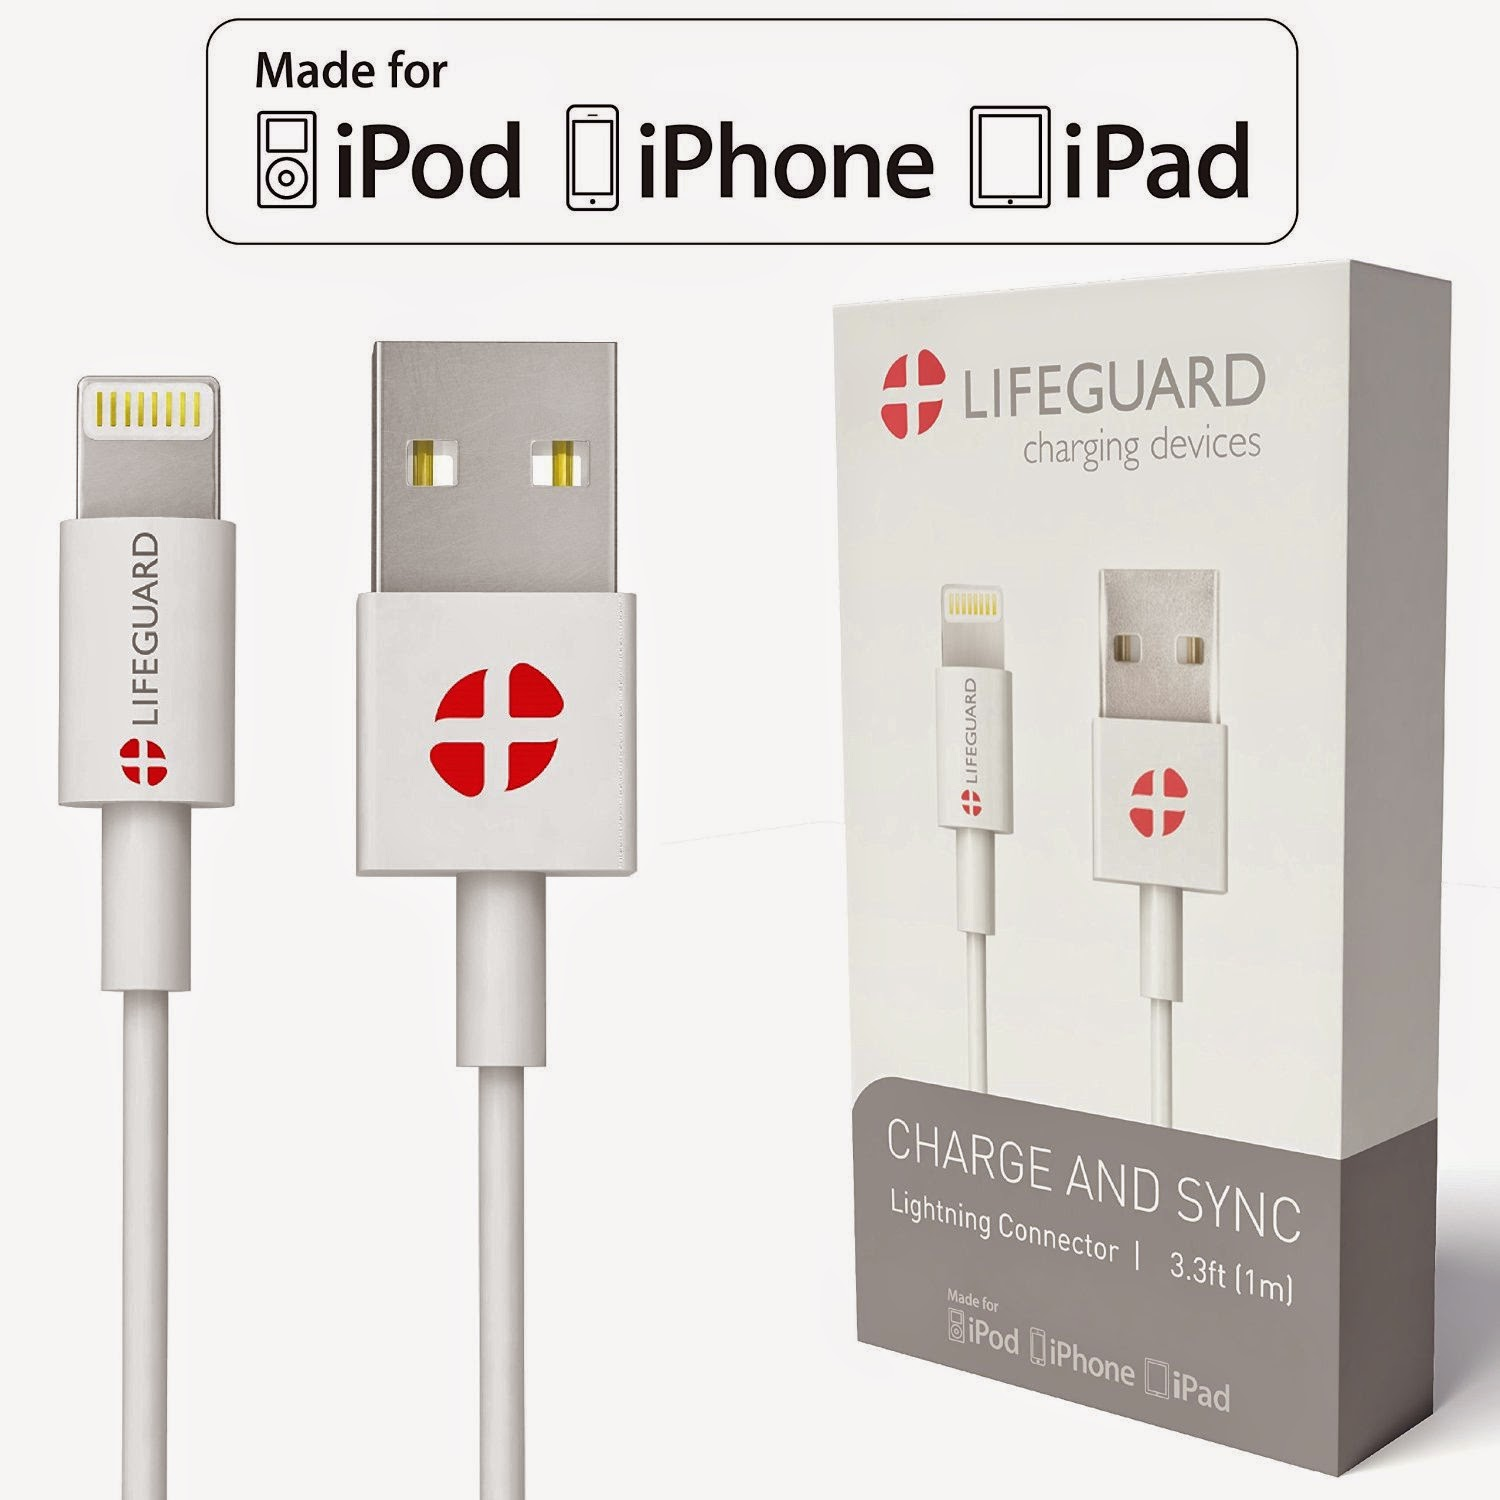 +LIFEGUARD Charge and Sync Lightning Connector